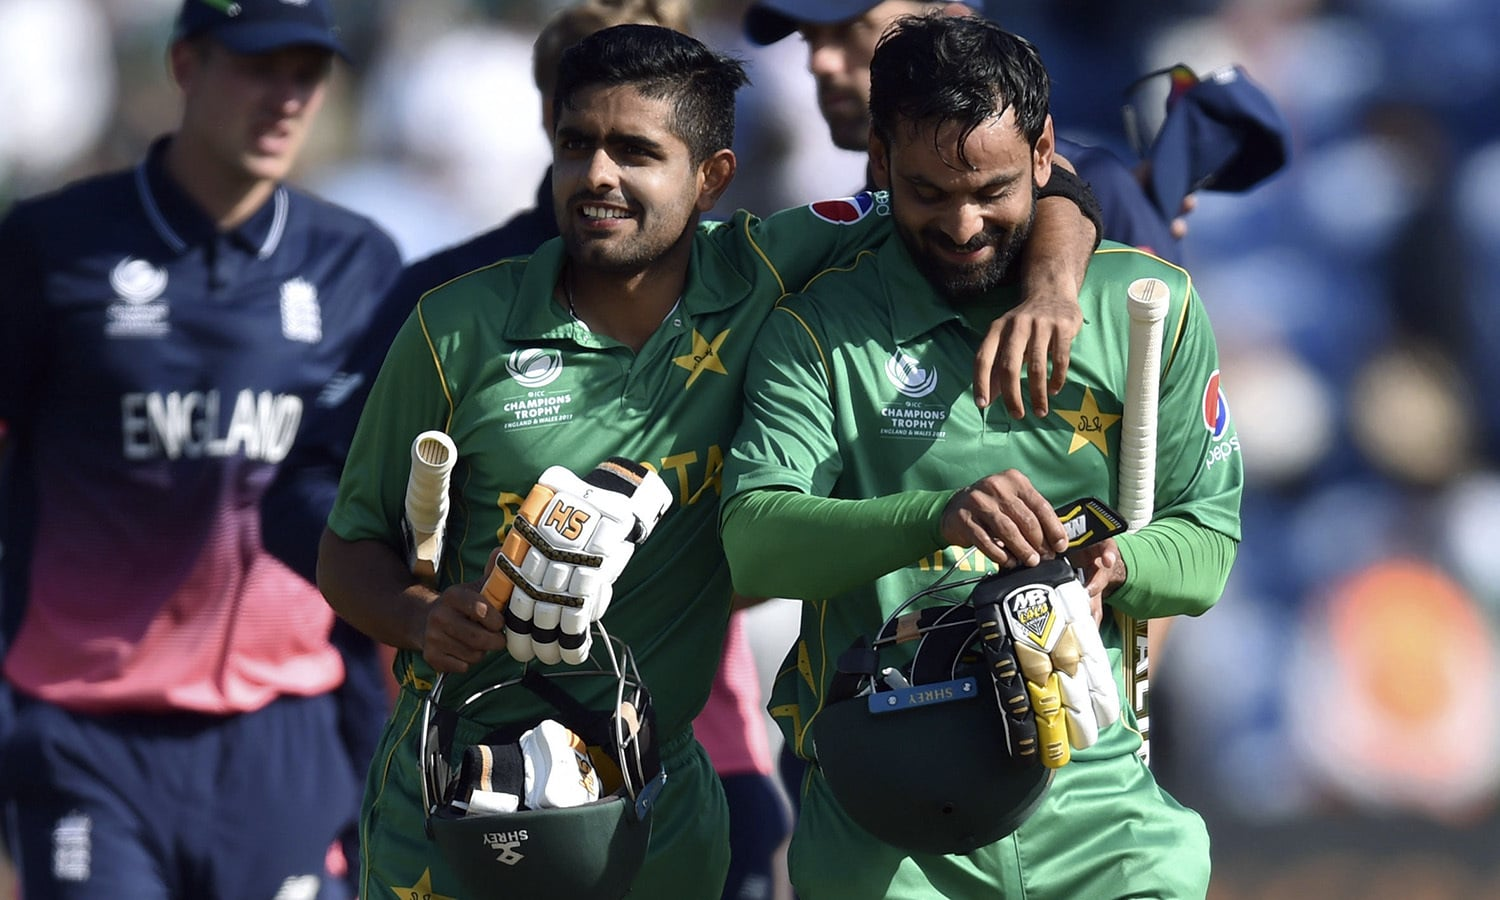 Babar Azam (L) and Mohammad Hafeez (R) celebrate victory against England as they leave the pitch. — AP/File